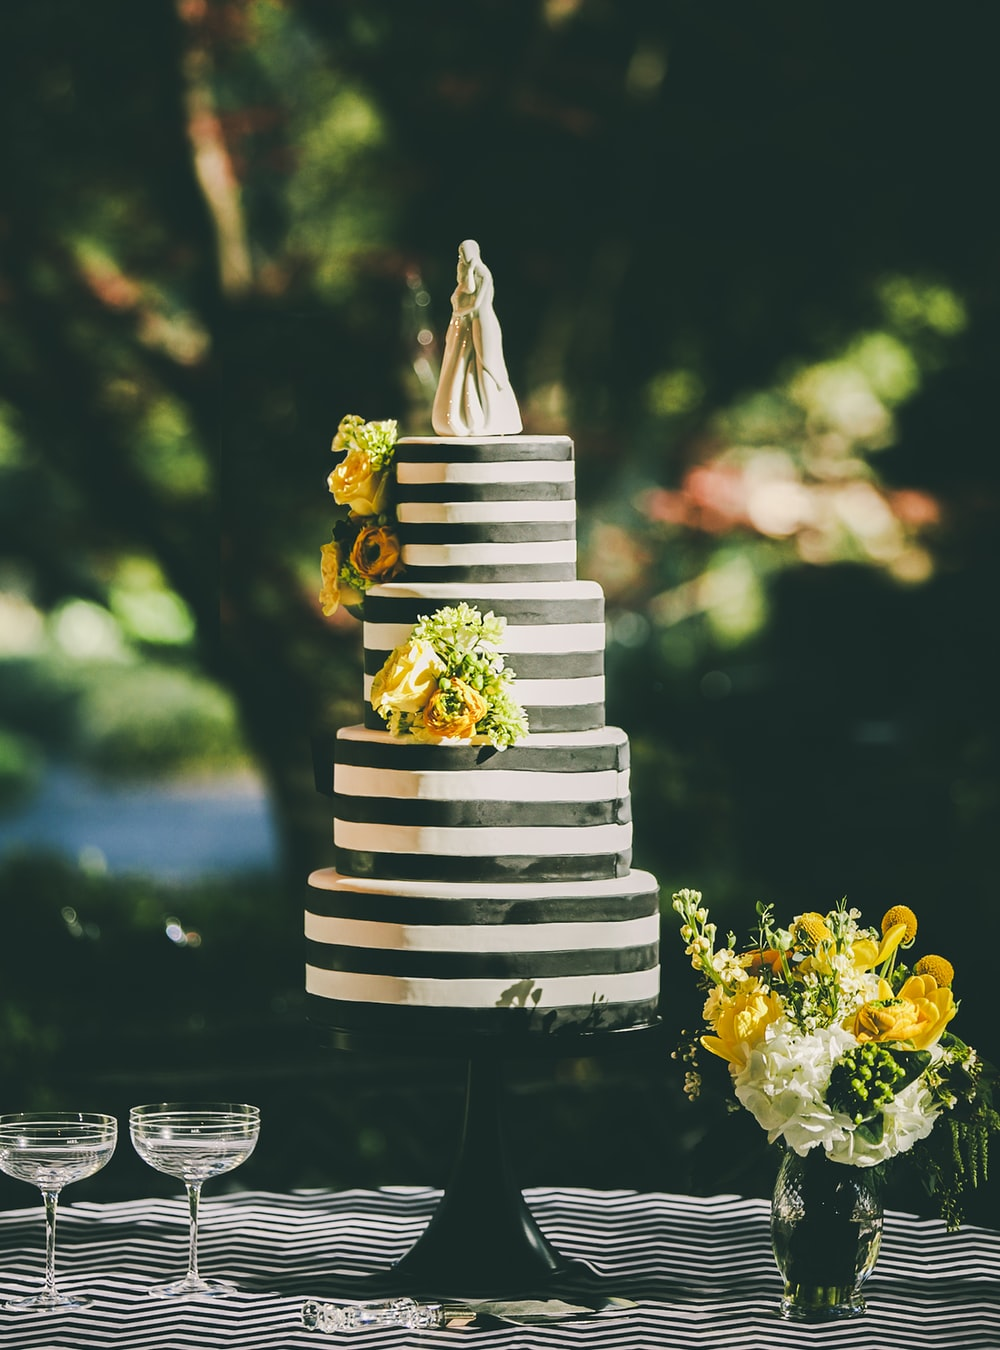 Unique Wedding Cake Toppers You Might Want To Try